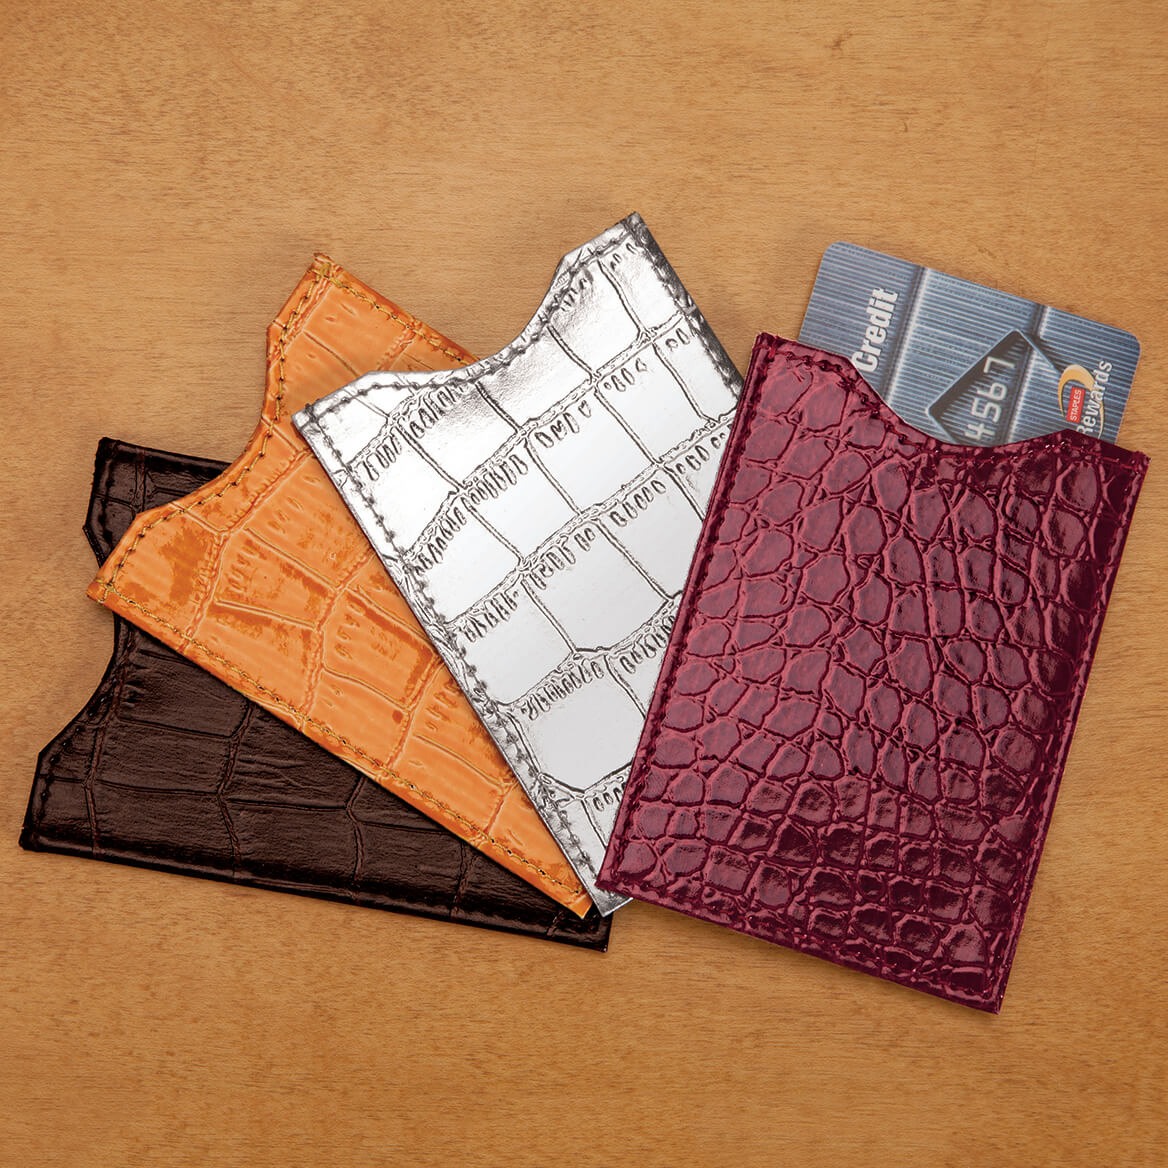 Plastic Wallet Inserts - Photo Wallet Inserts - Miles Kimball